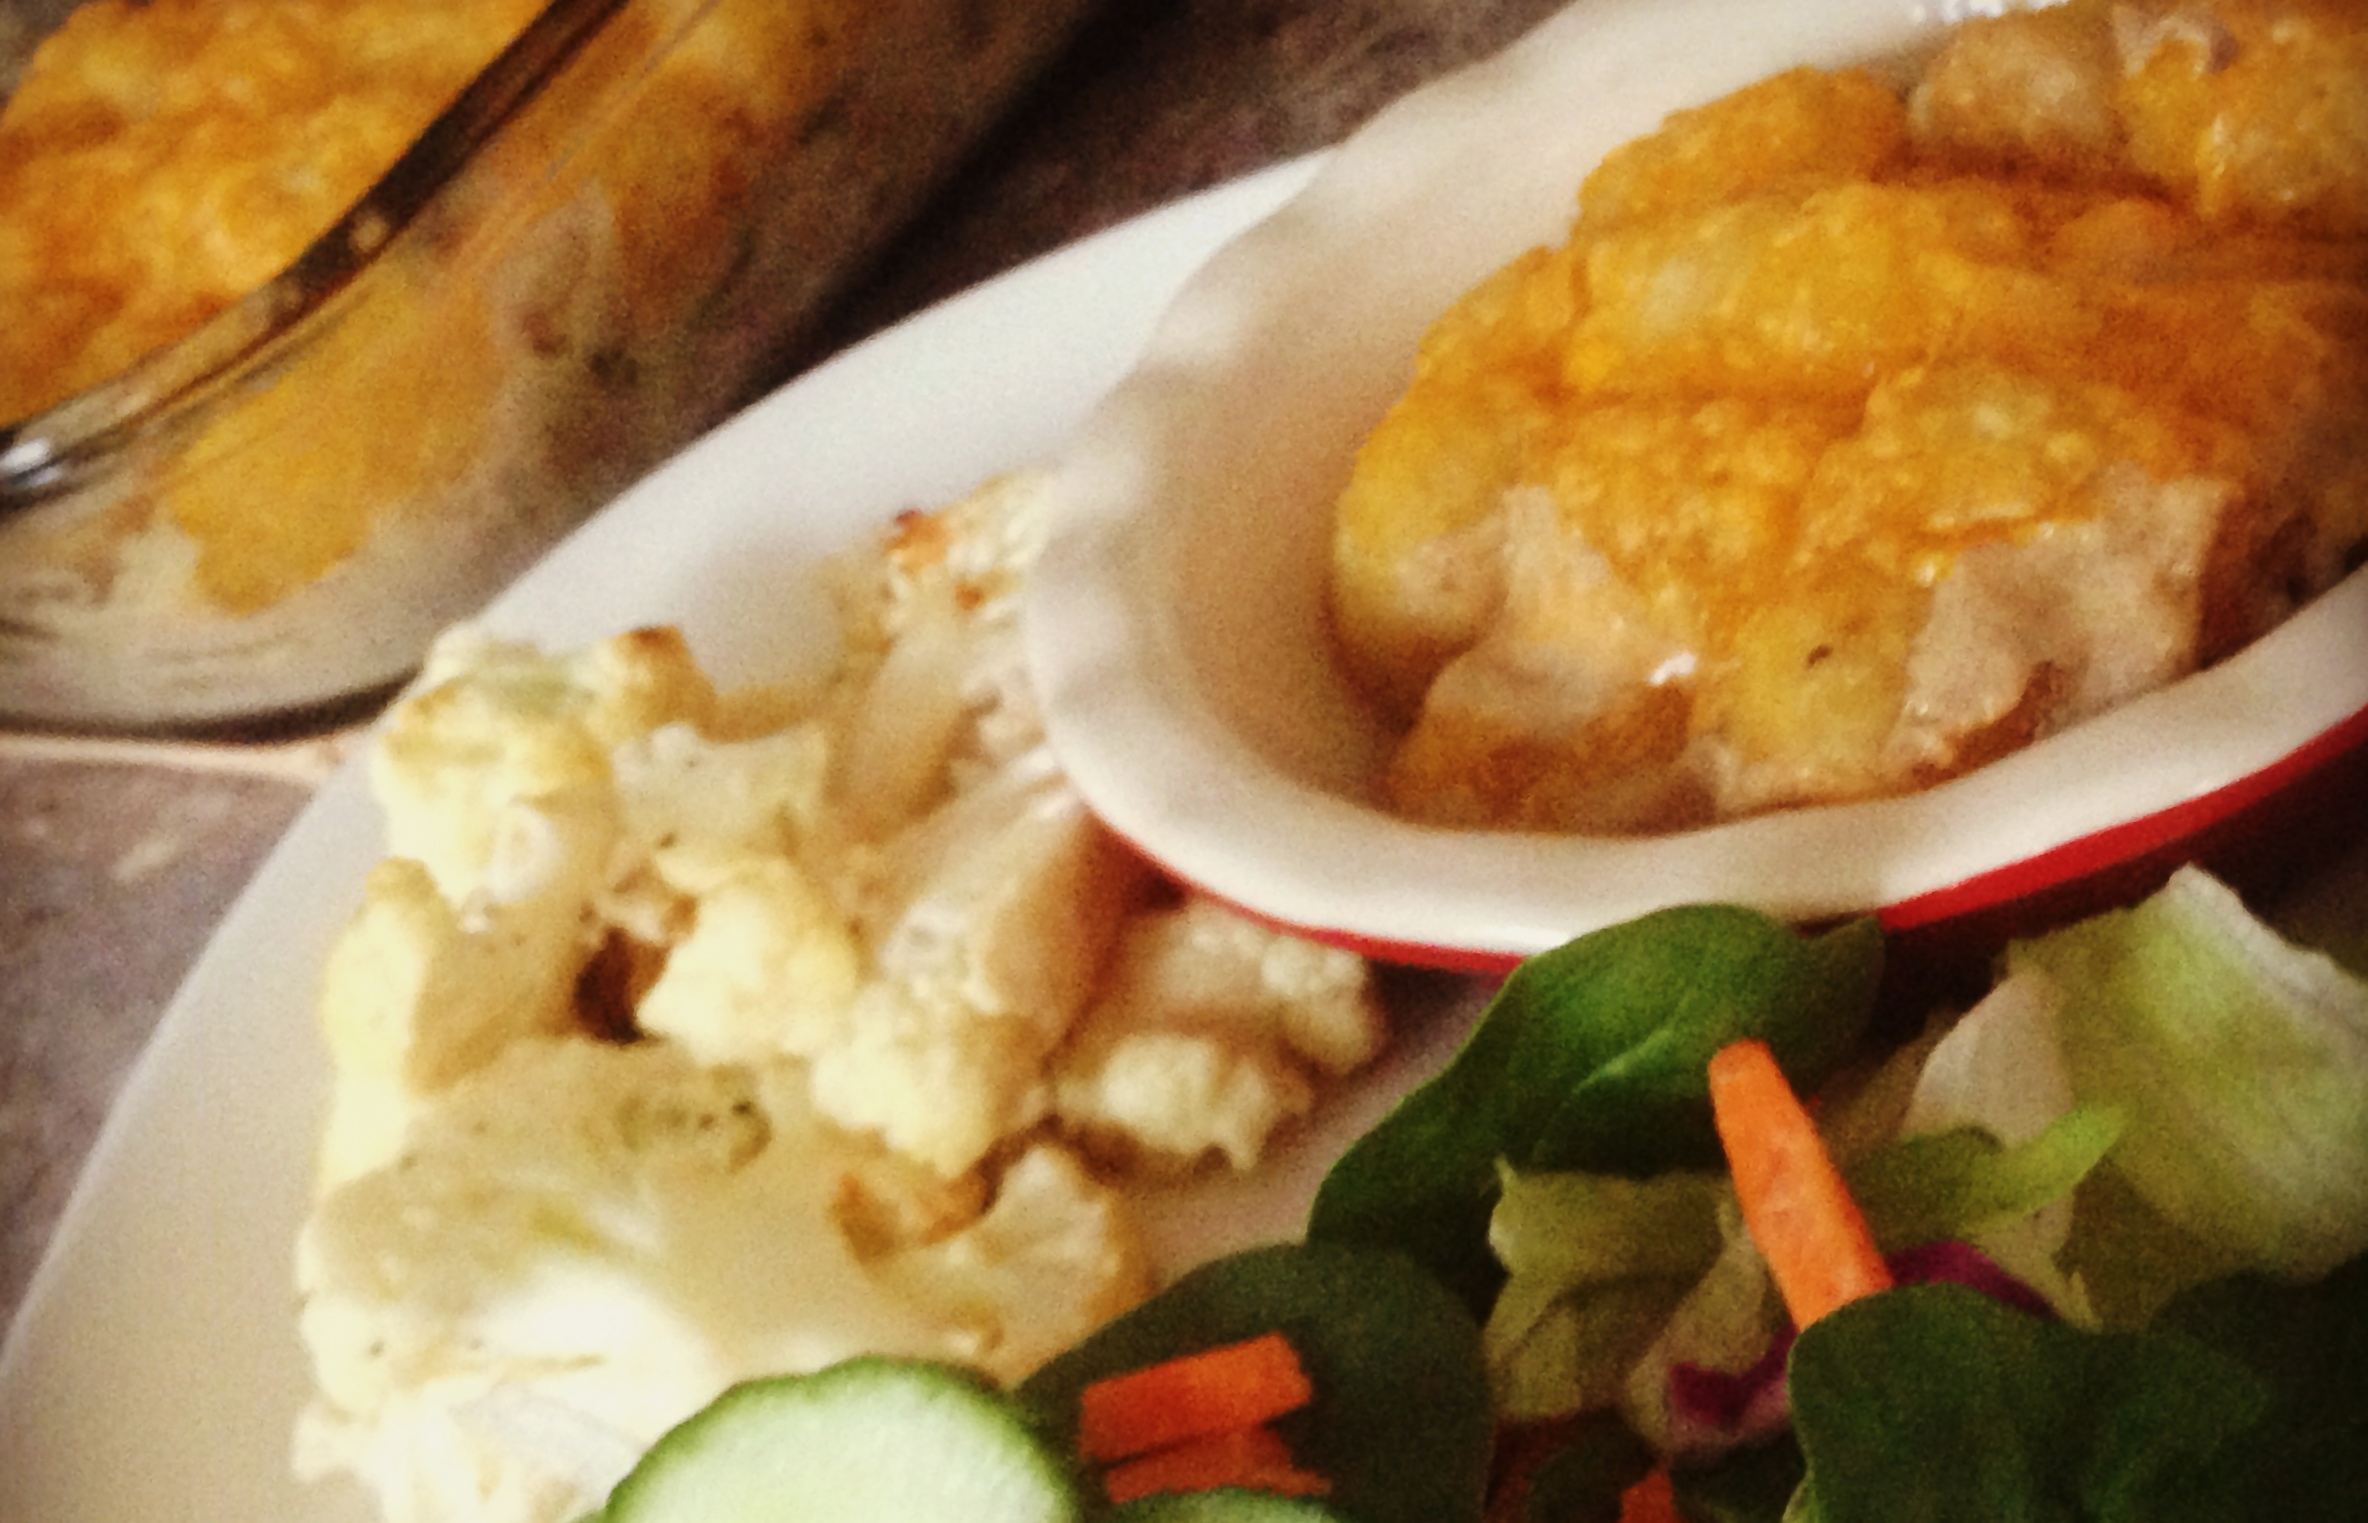 Tater Tot Casserole with Roasted Cauliflower and Garden Salad